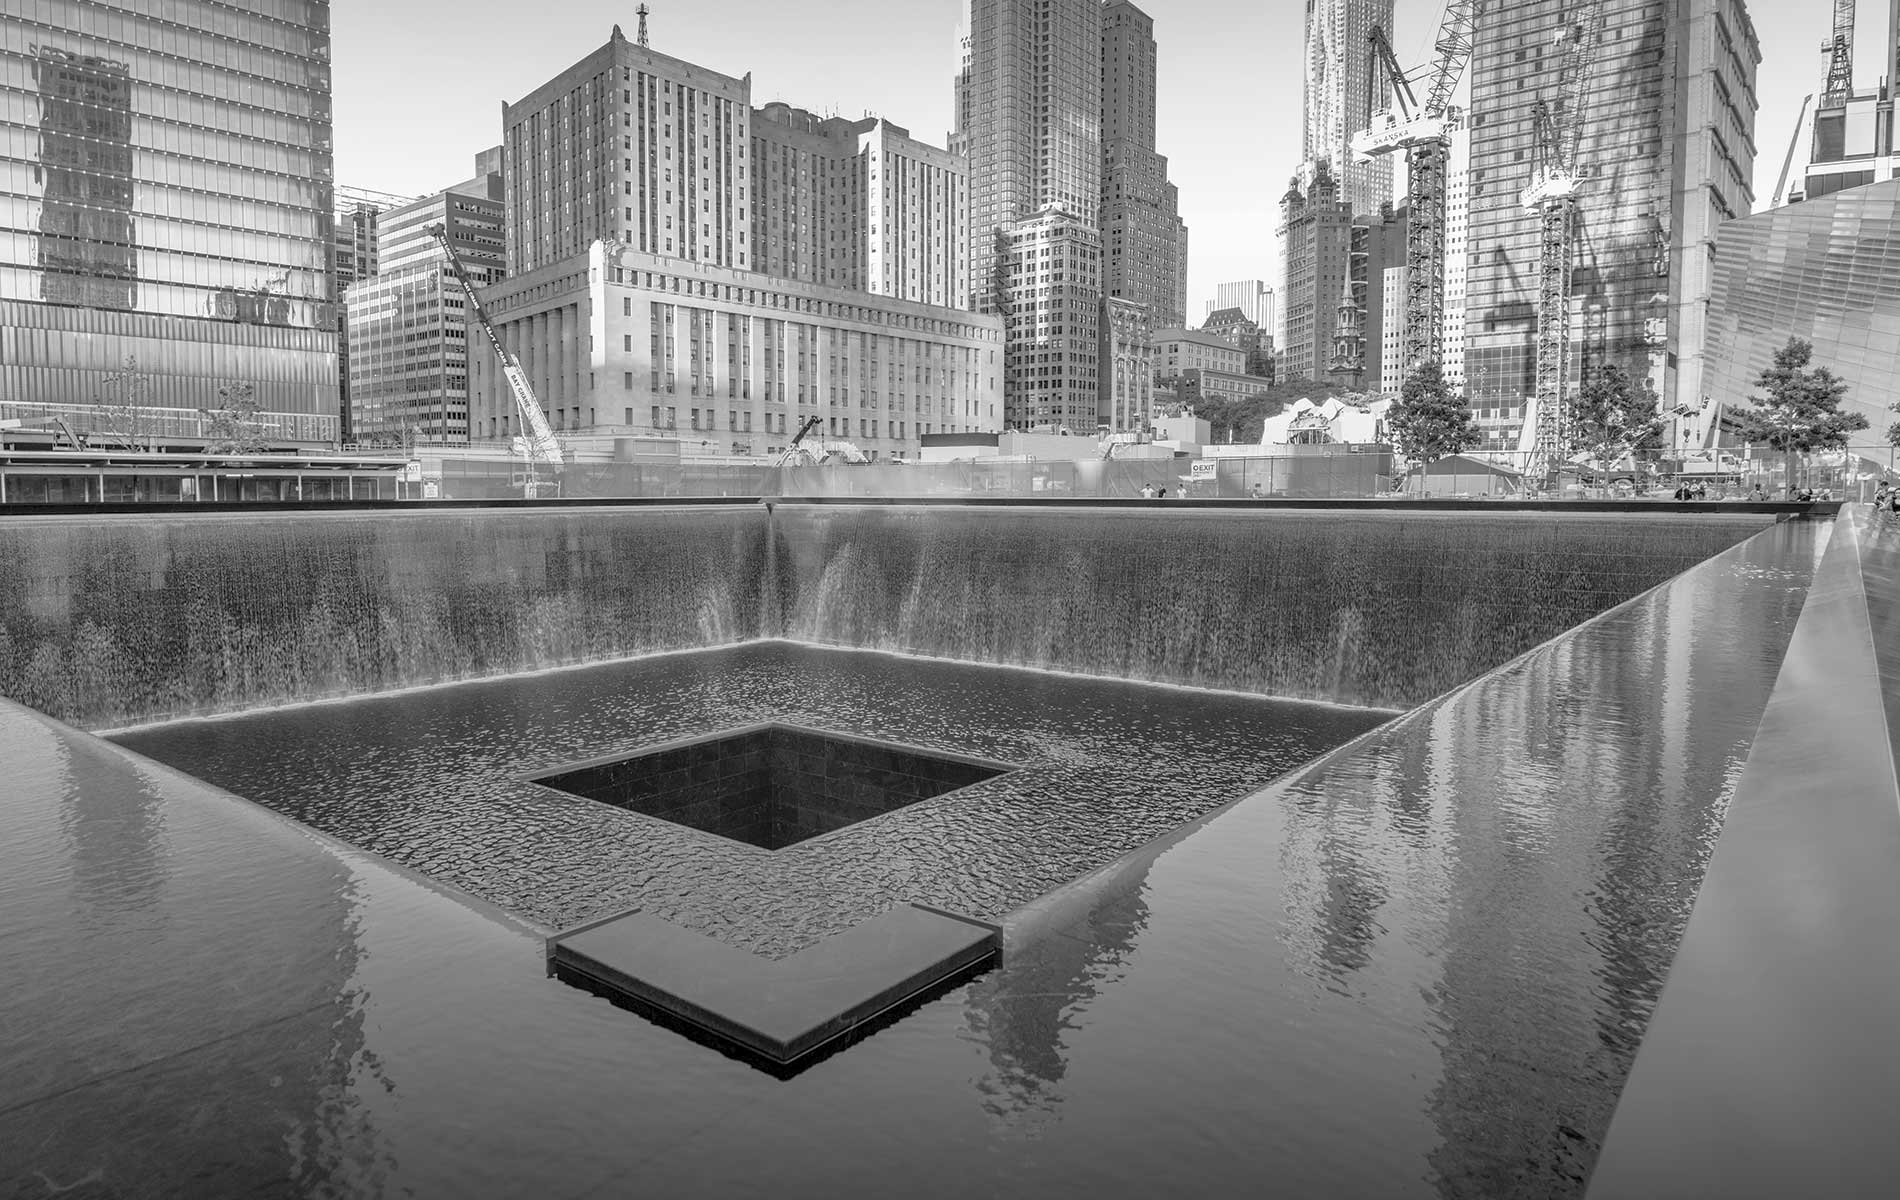 September 11 World Trade Center Memorial